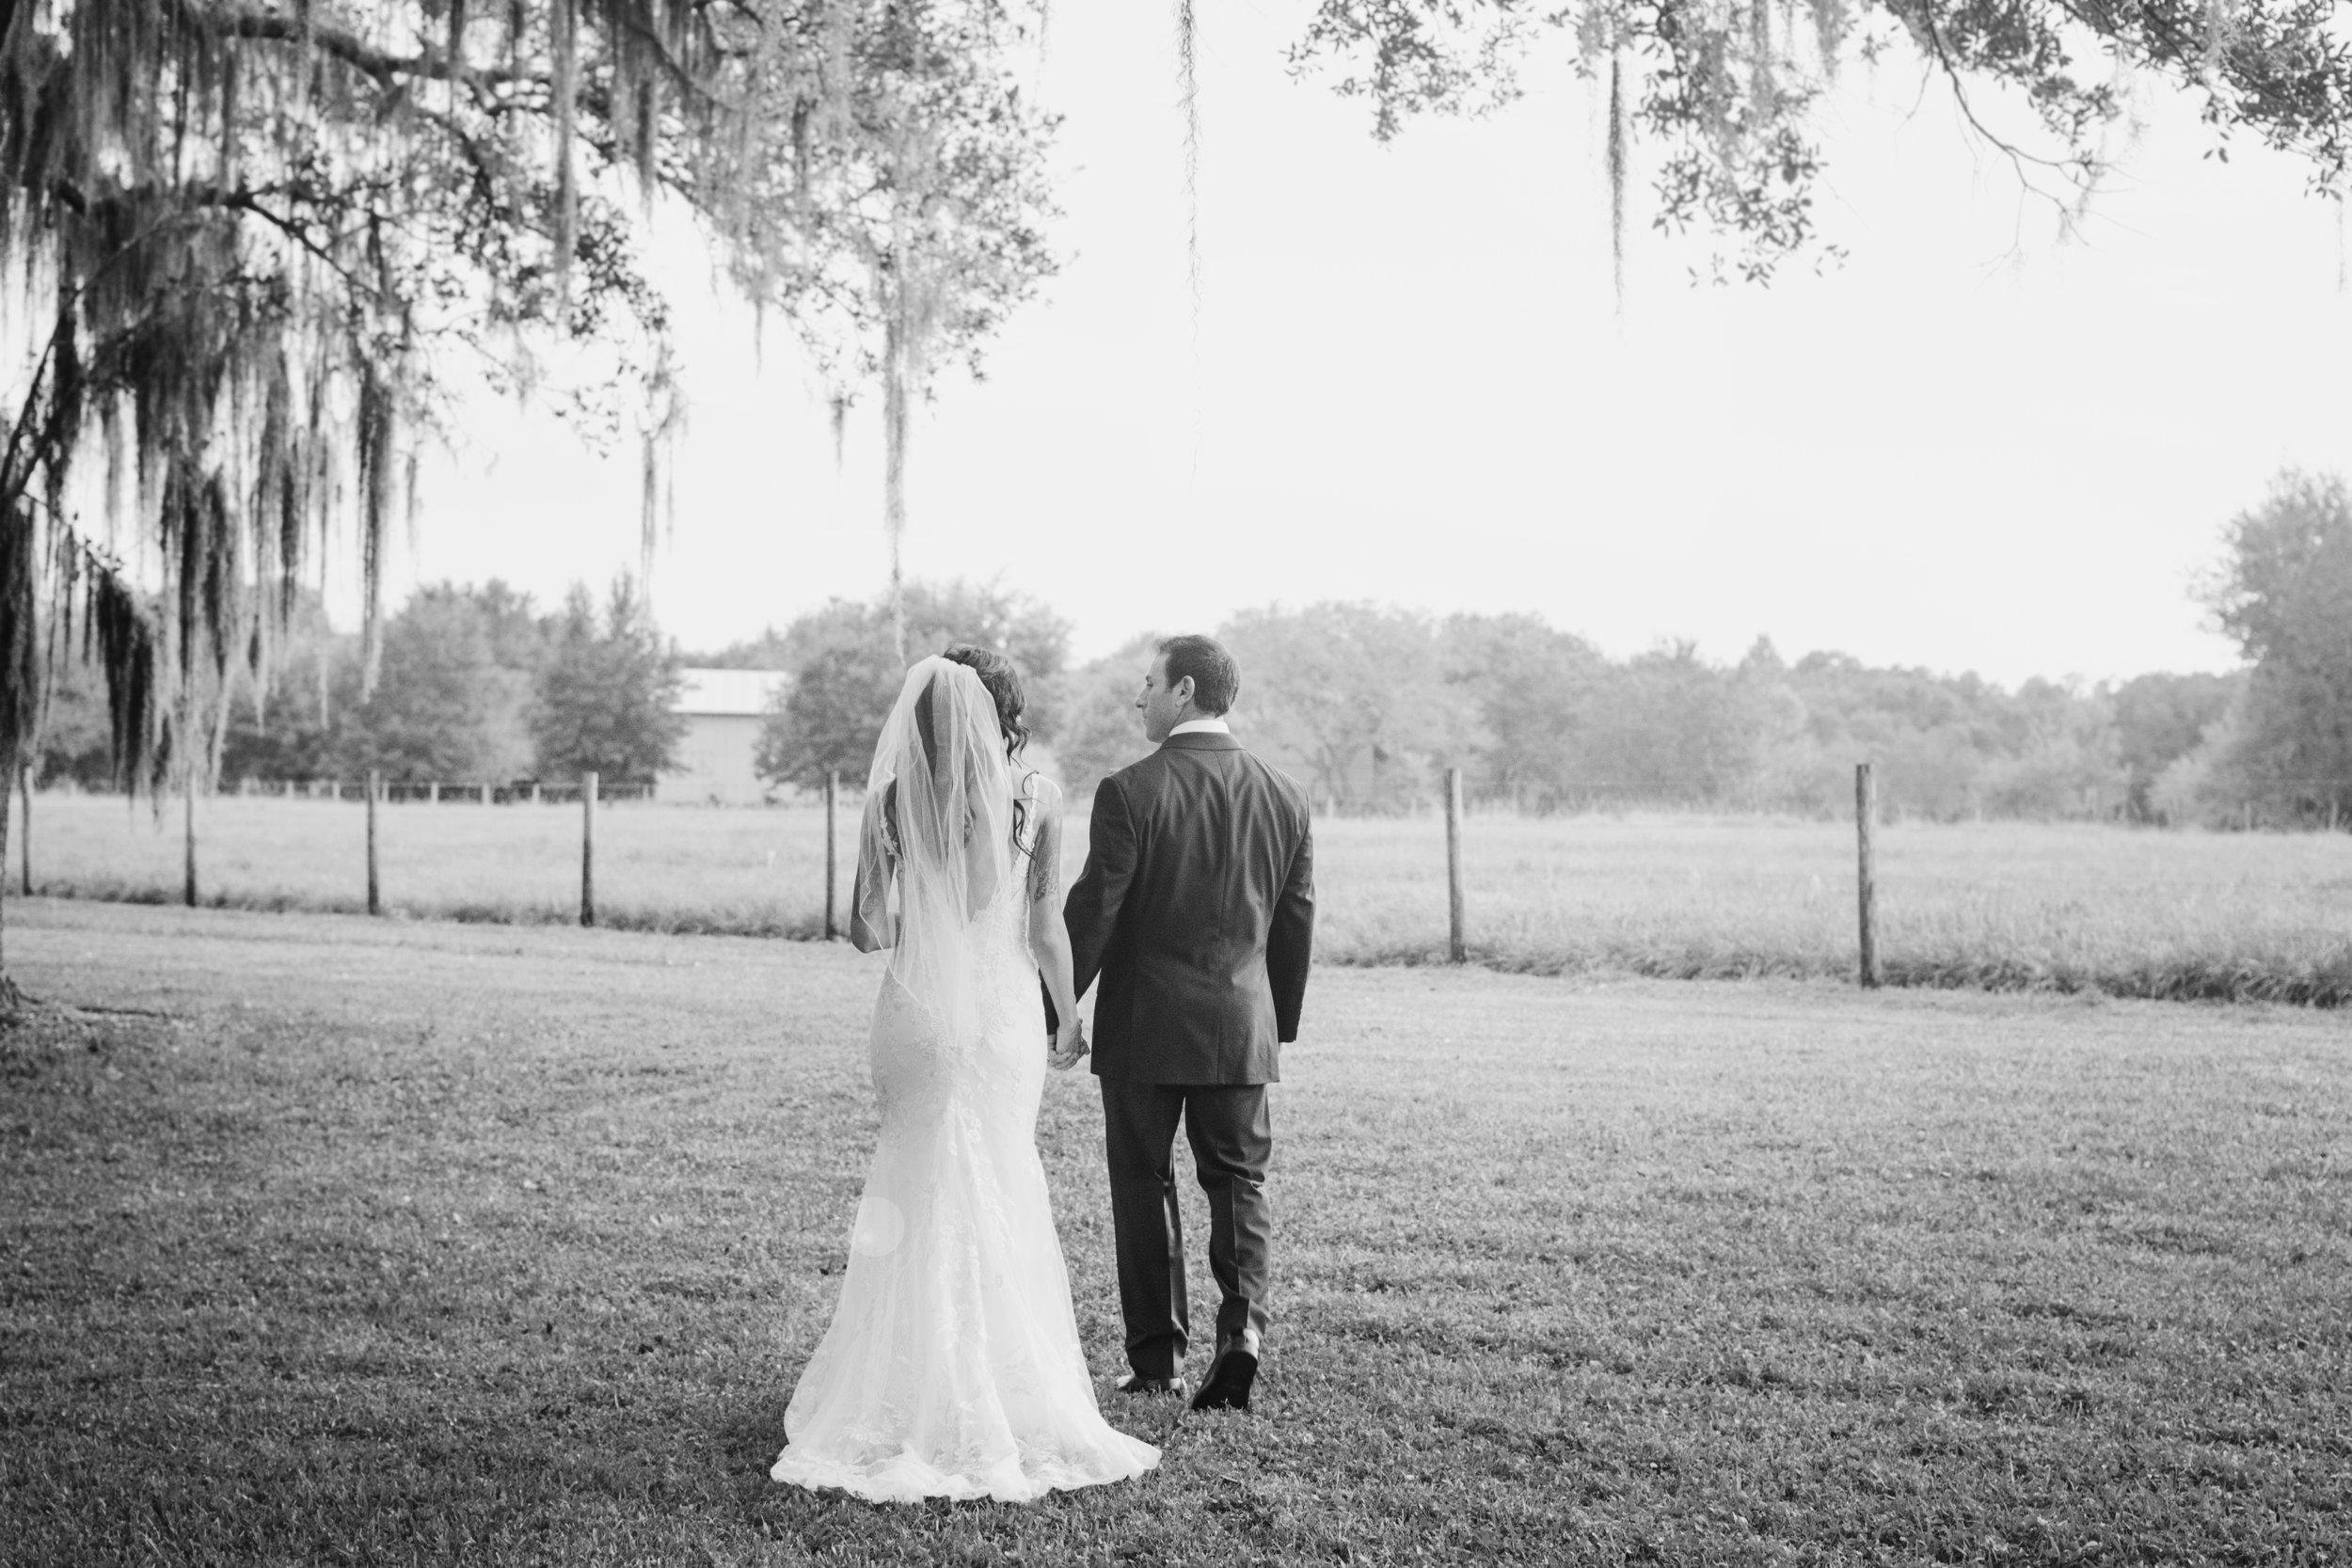 Erin + Mike - The Oaks at Windsong - Sarasota Wedding Photography - Couple Photos - Emily & Co. Photography (15).jpg